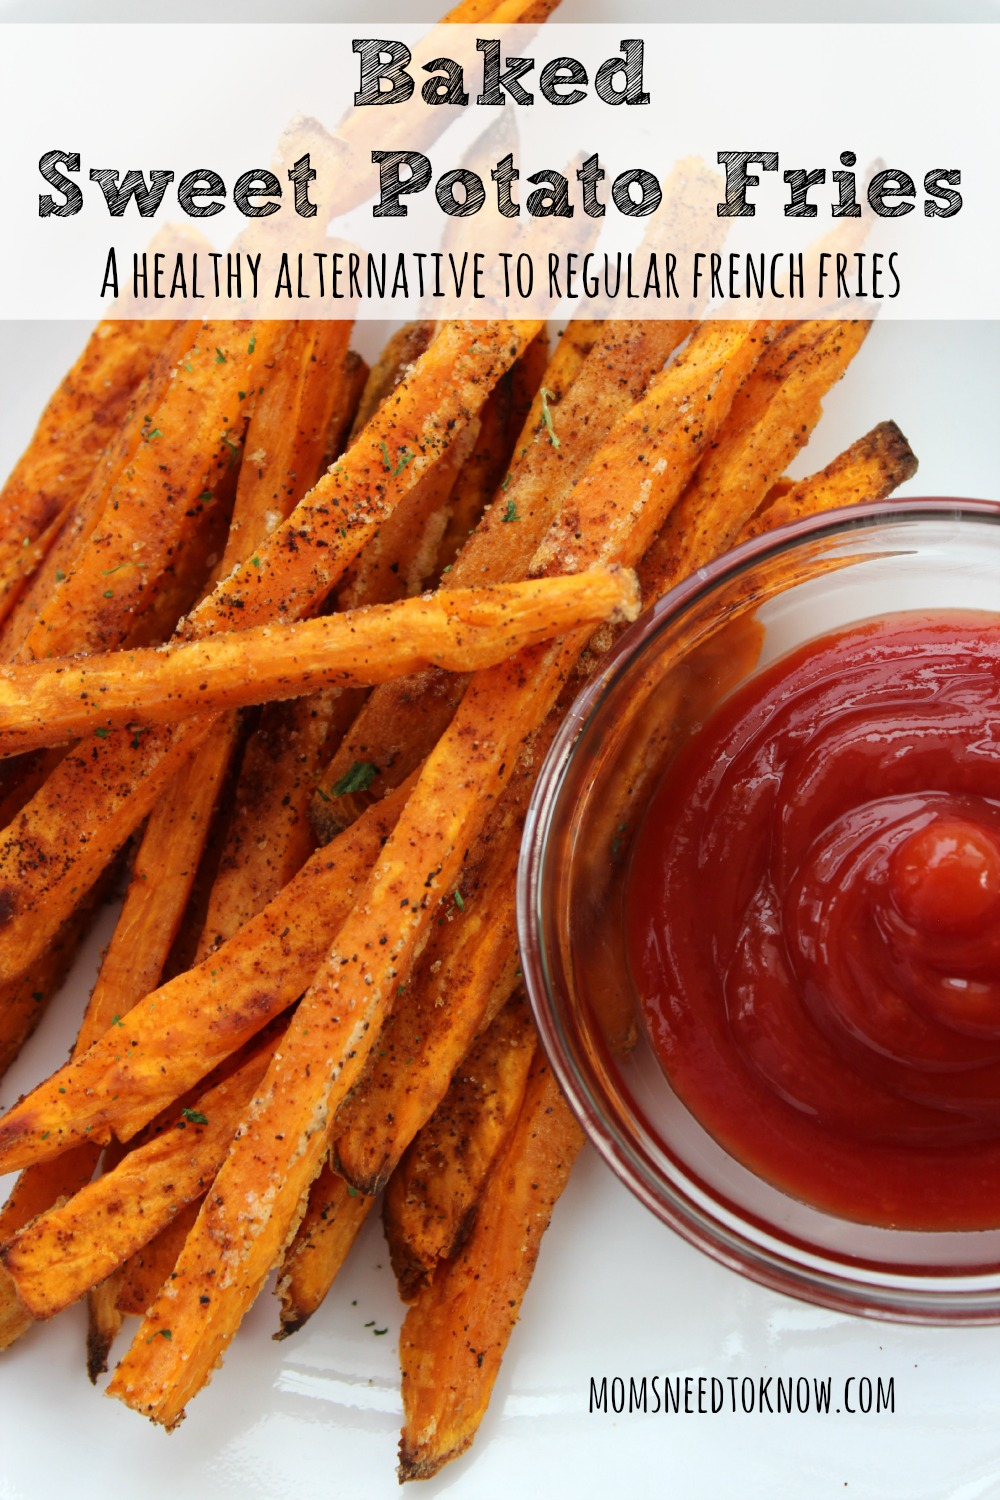 How-To-Make-Baked-Sweet-Potato-Fries